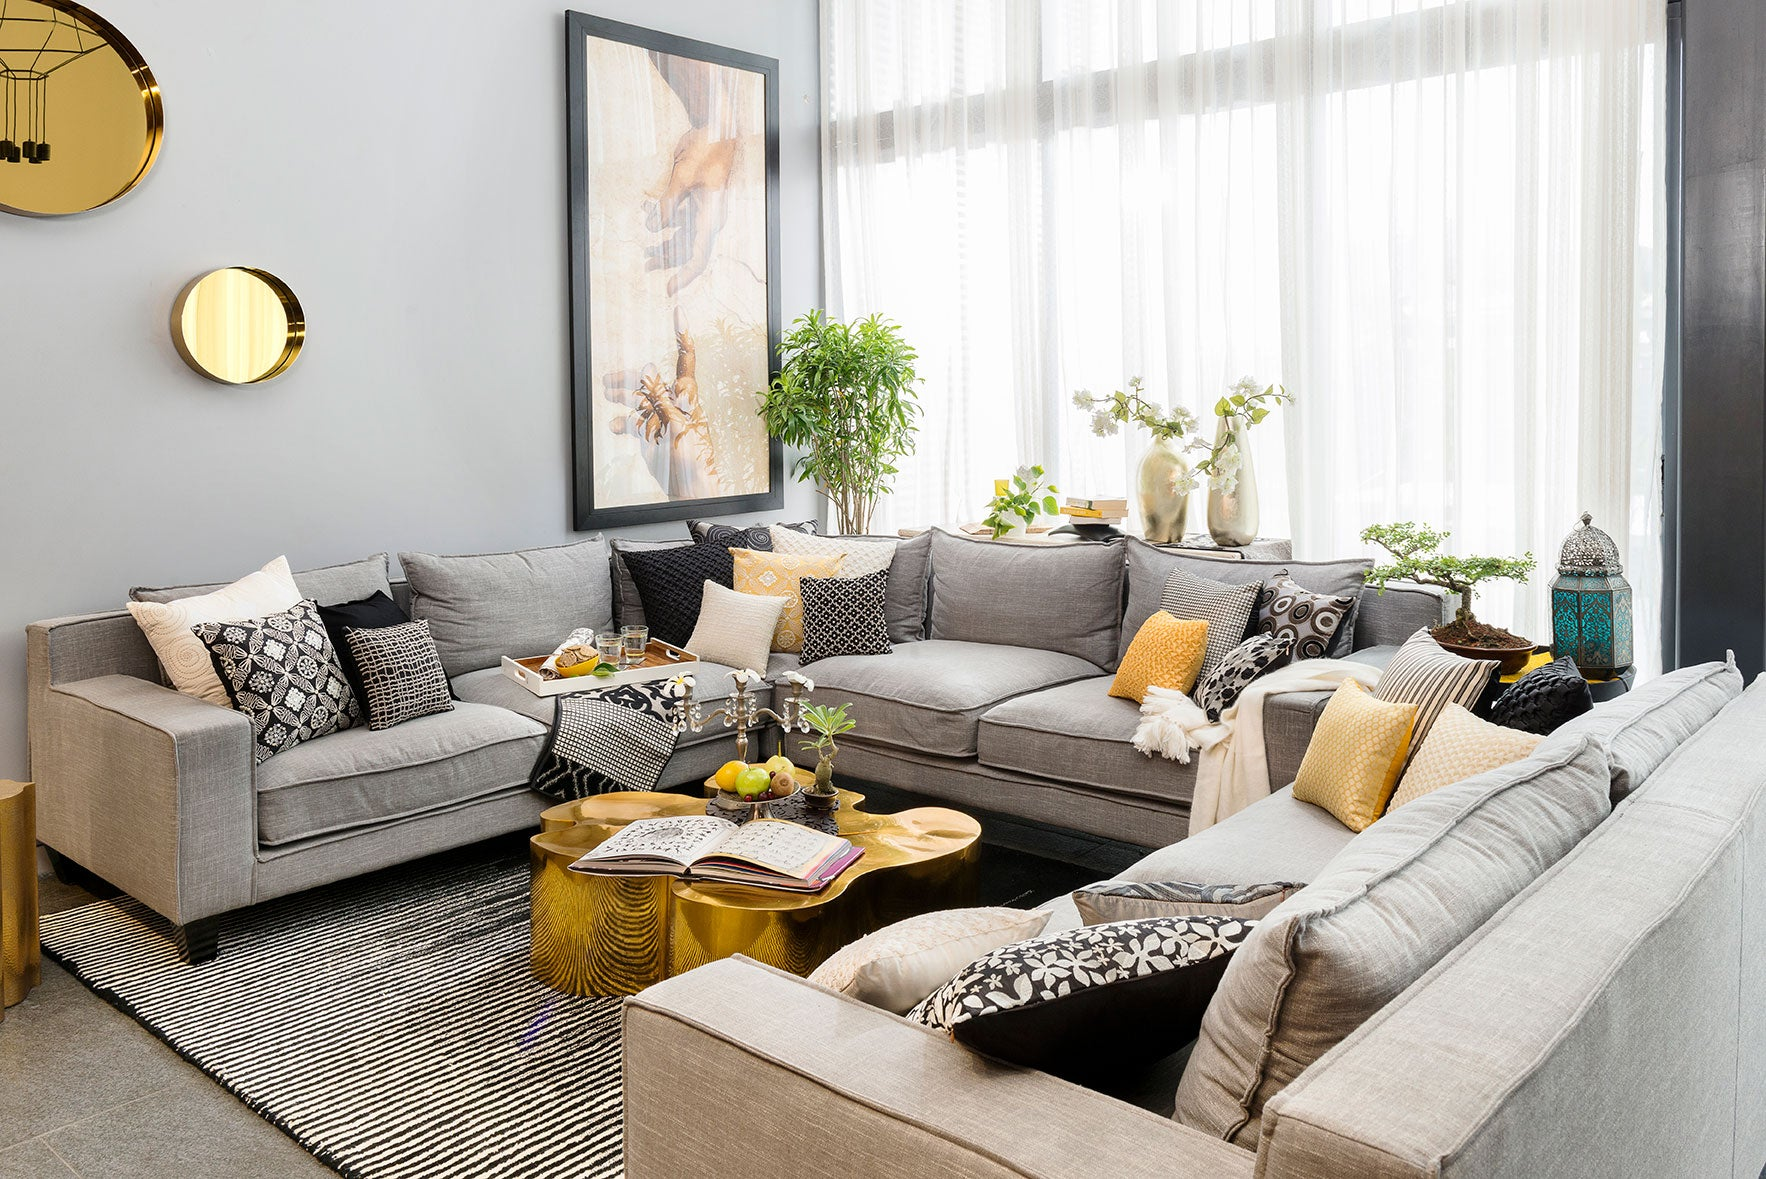 What Is Your Home Decor Personality